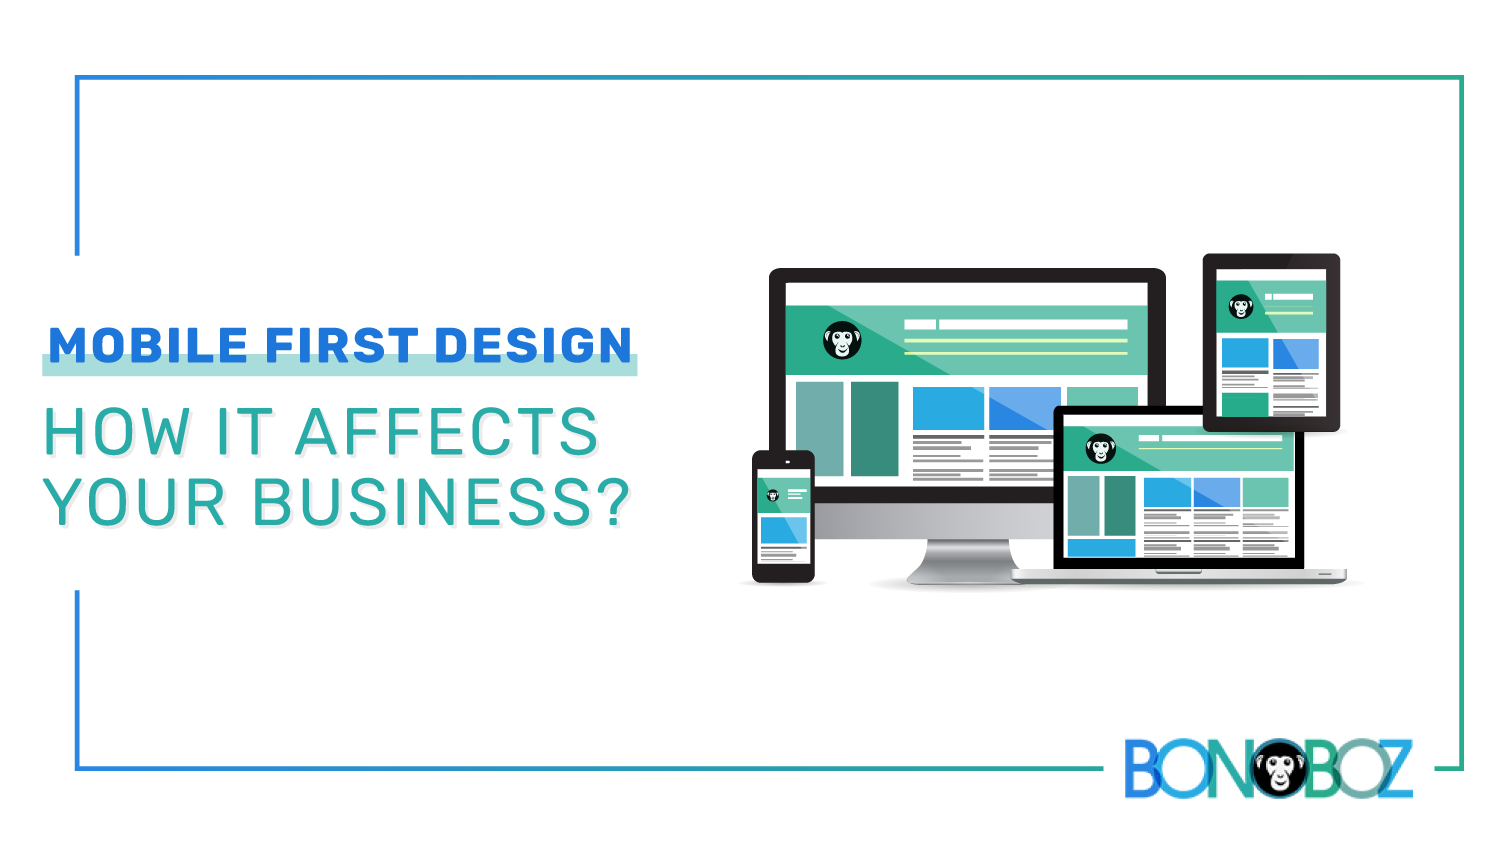 Mobile-First Design: How It Affects Your Business